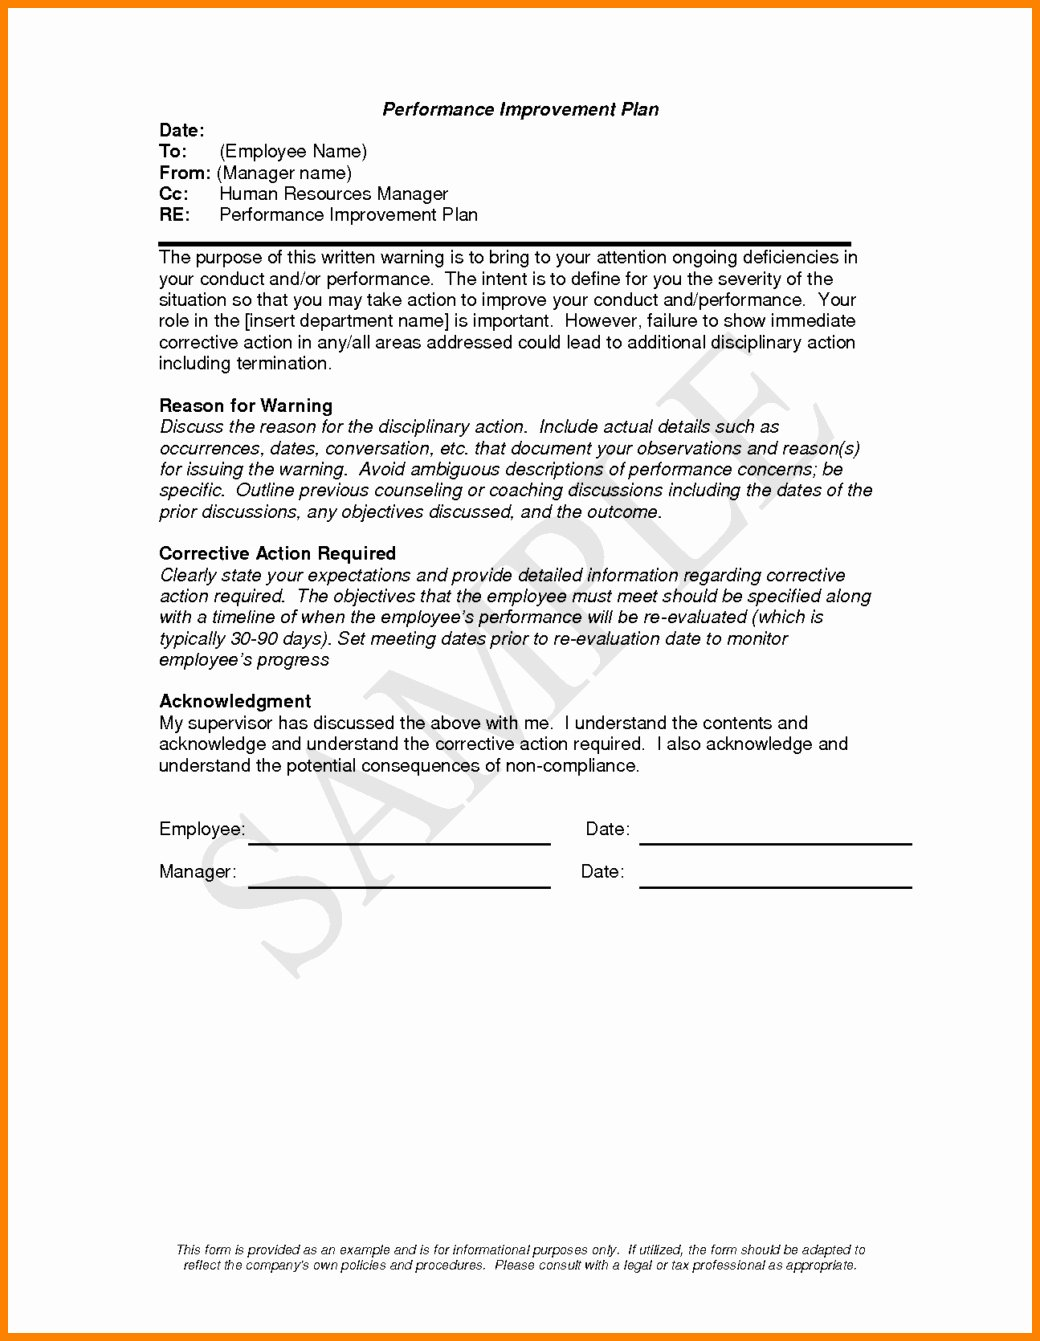 Employee Performance Plan Template Luxury Performance Improvement Plan Letter Template Examples